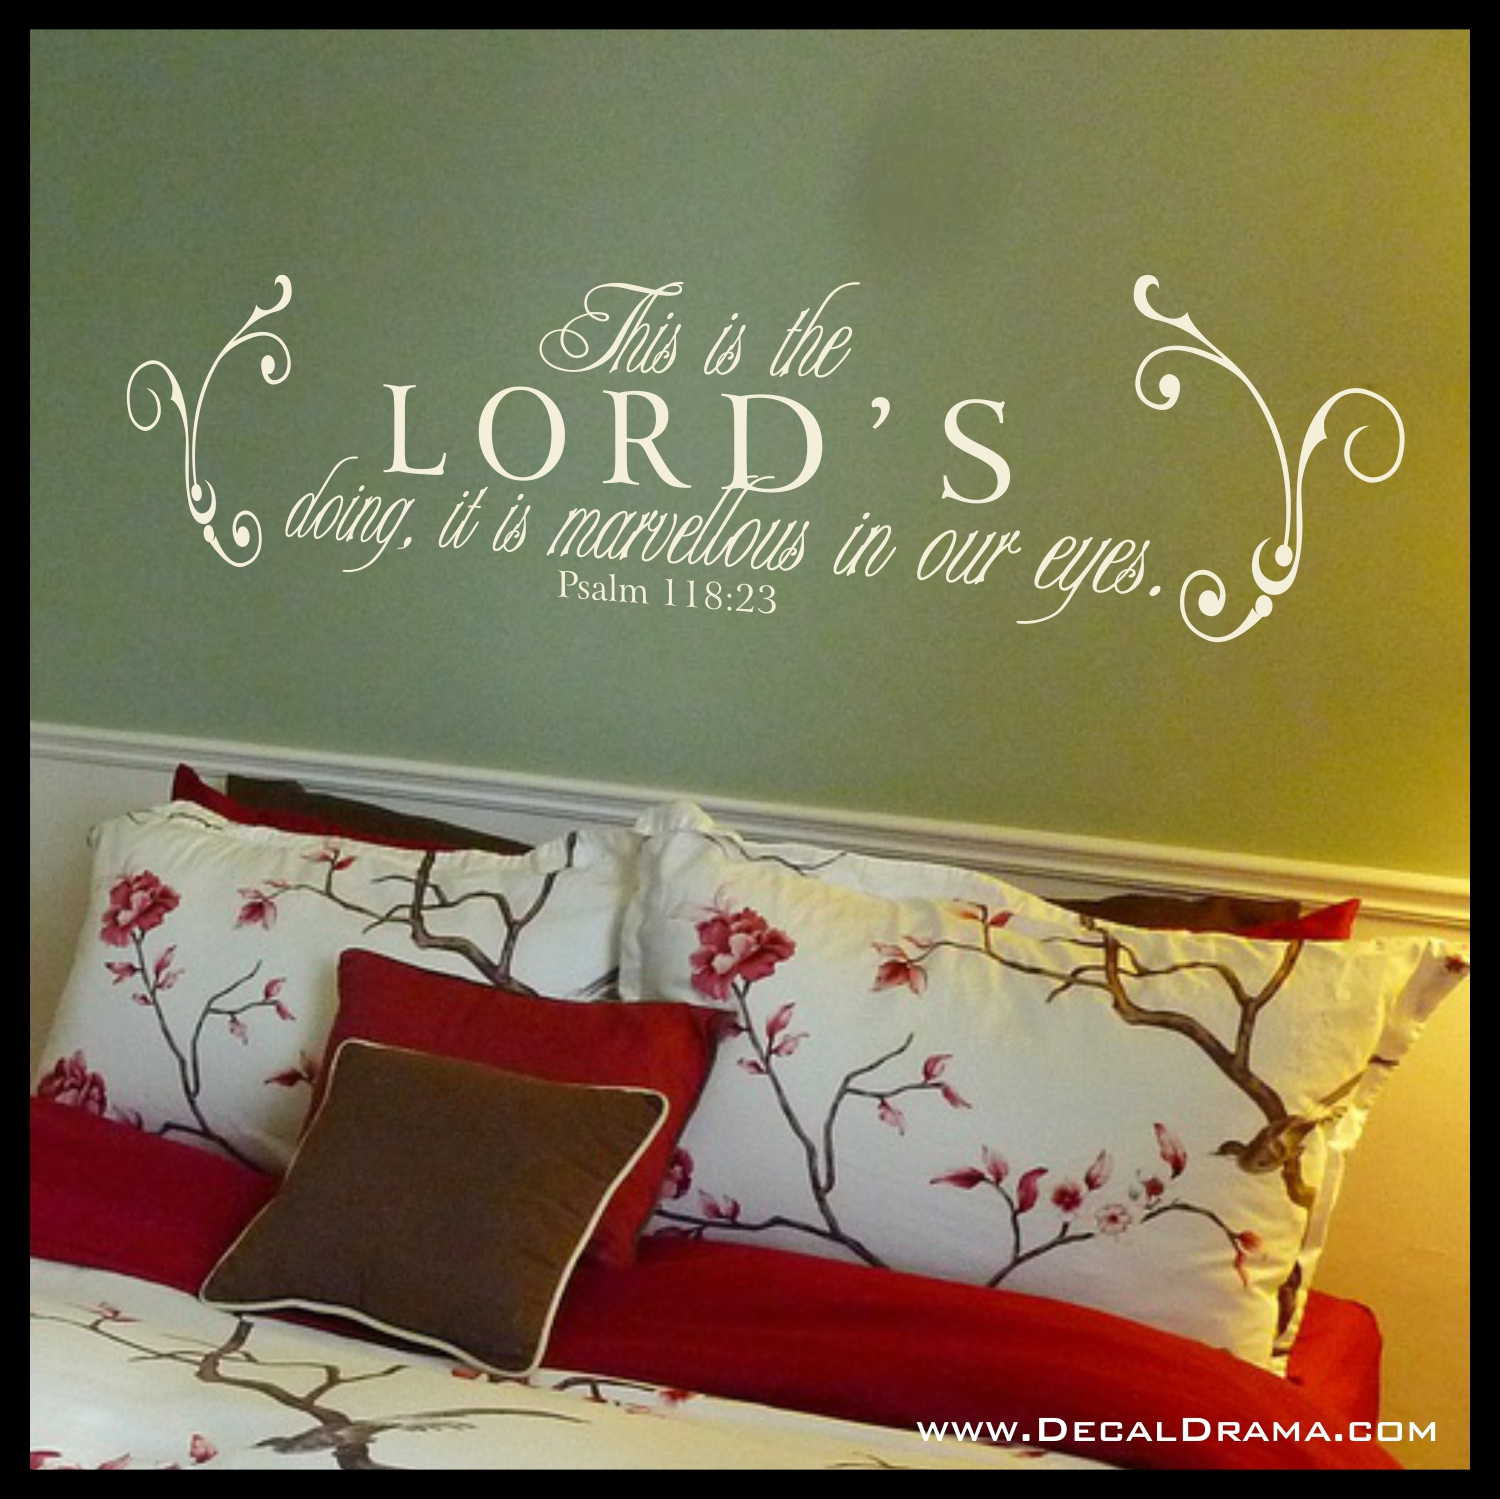 This Is The LORDs Doing It Is Marvellous In Our Eyes Psalm - Wall decals quotes bible